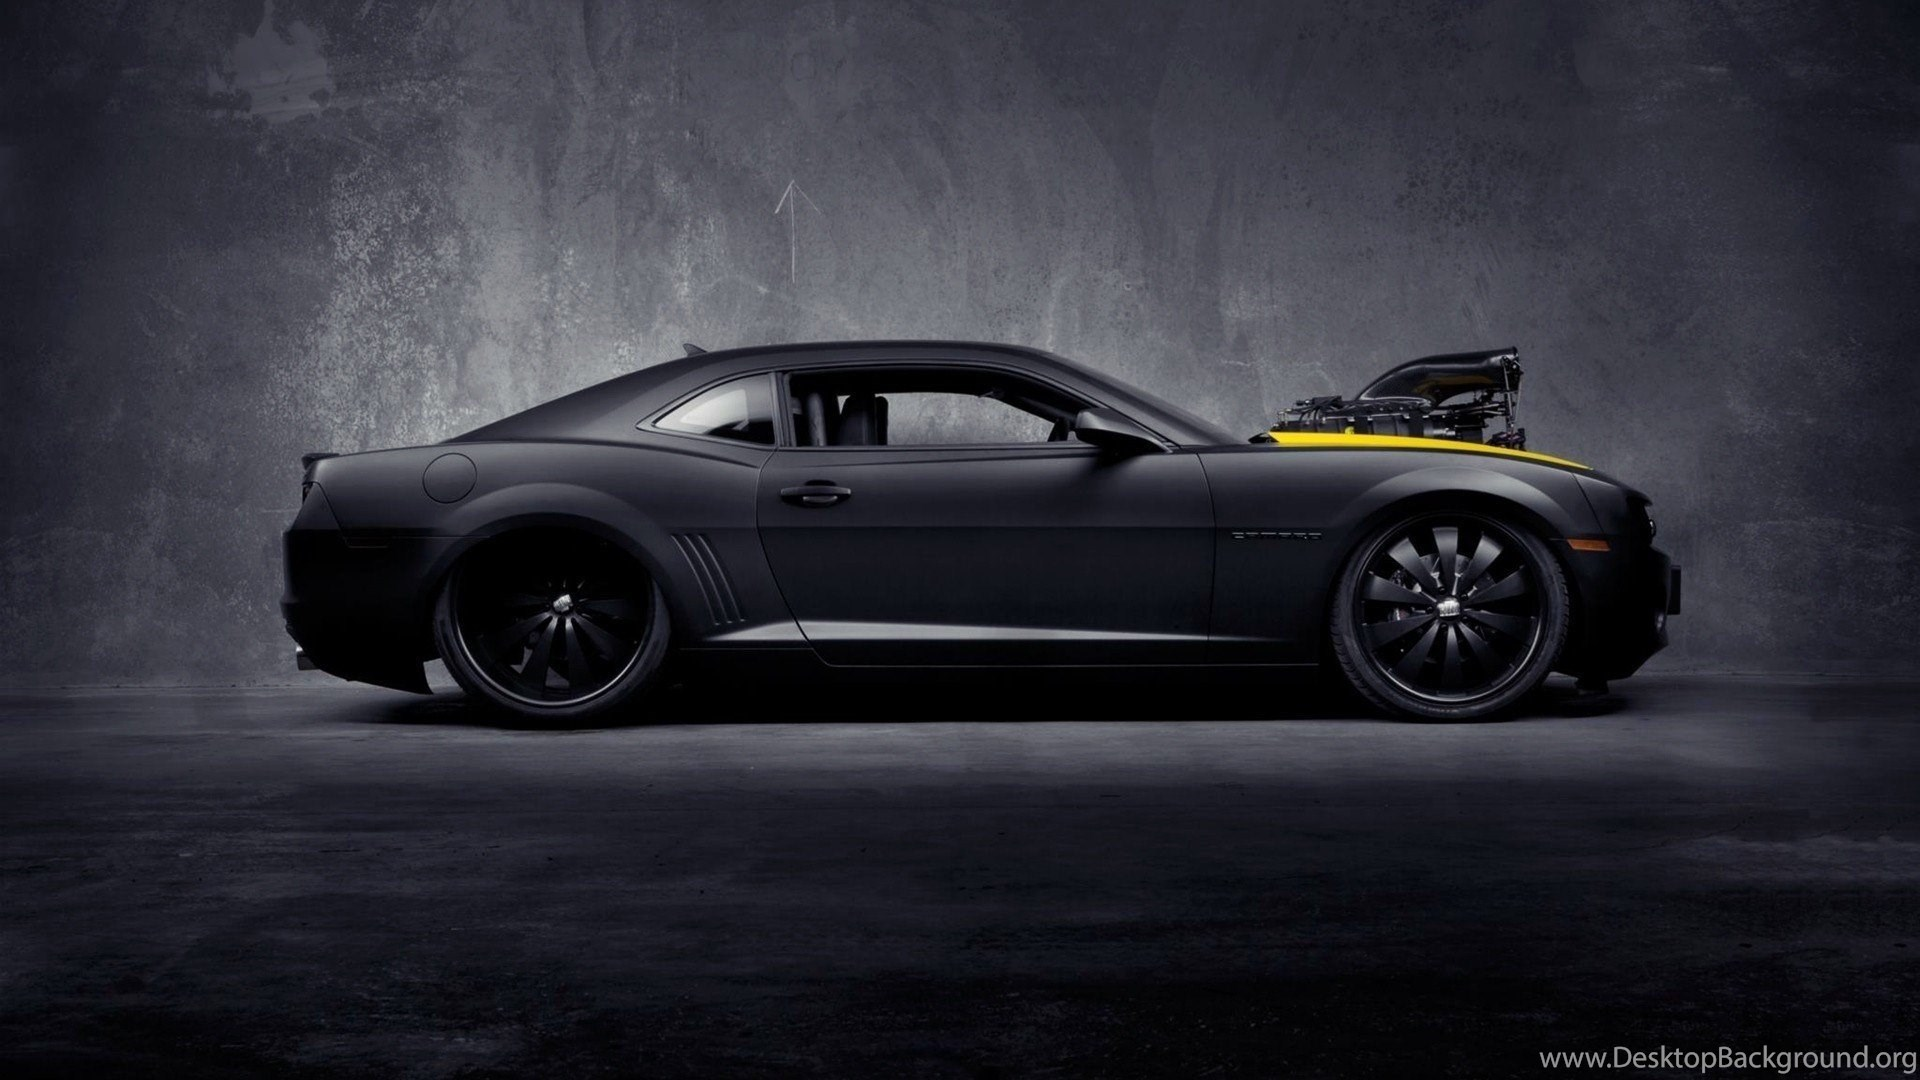 Muscle Car Wallpapers Archives Wallpapers Desktop Background